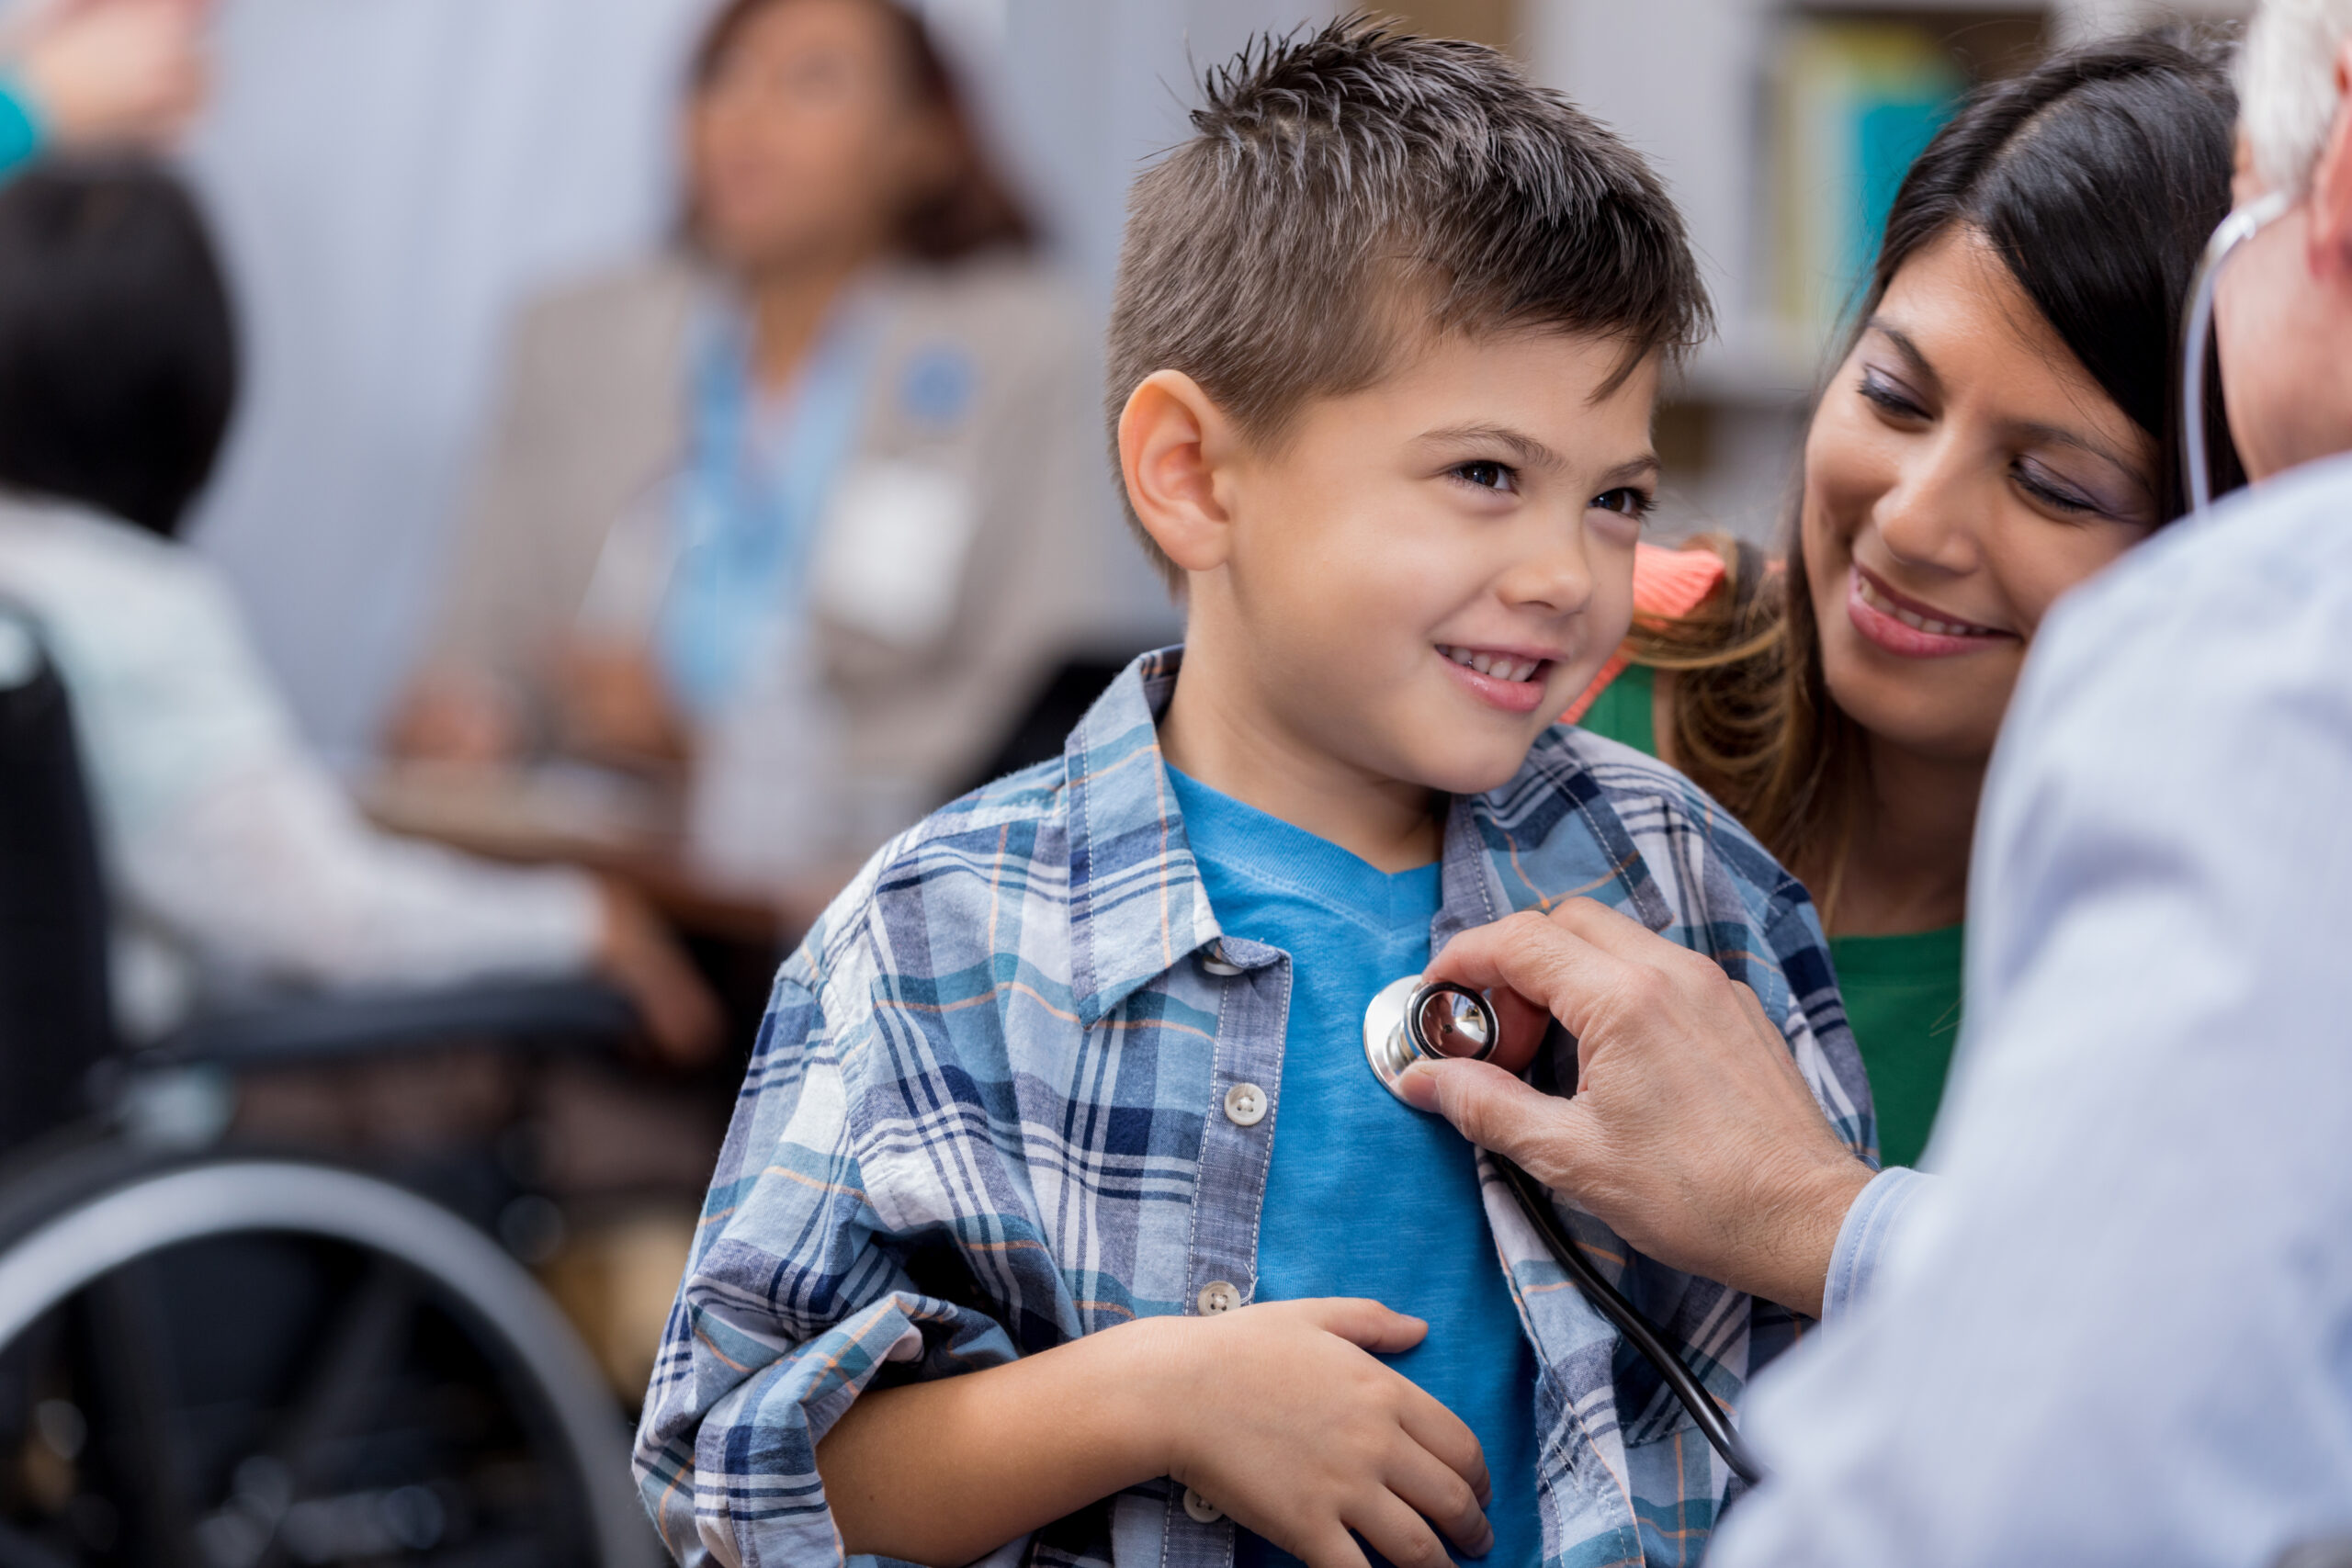 Pediatrician examines young male patient